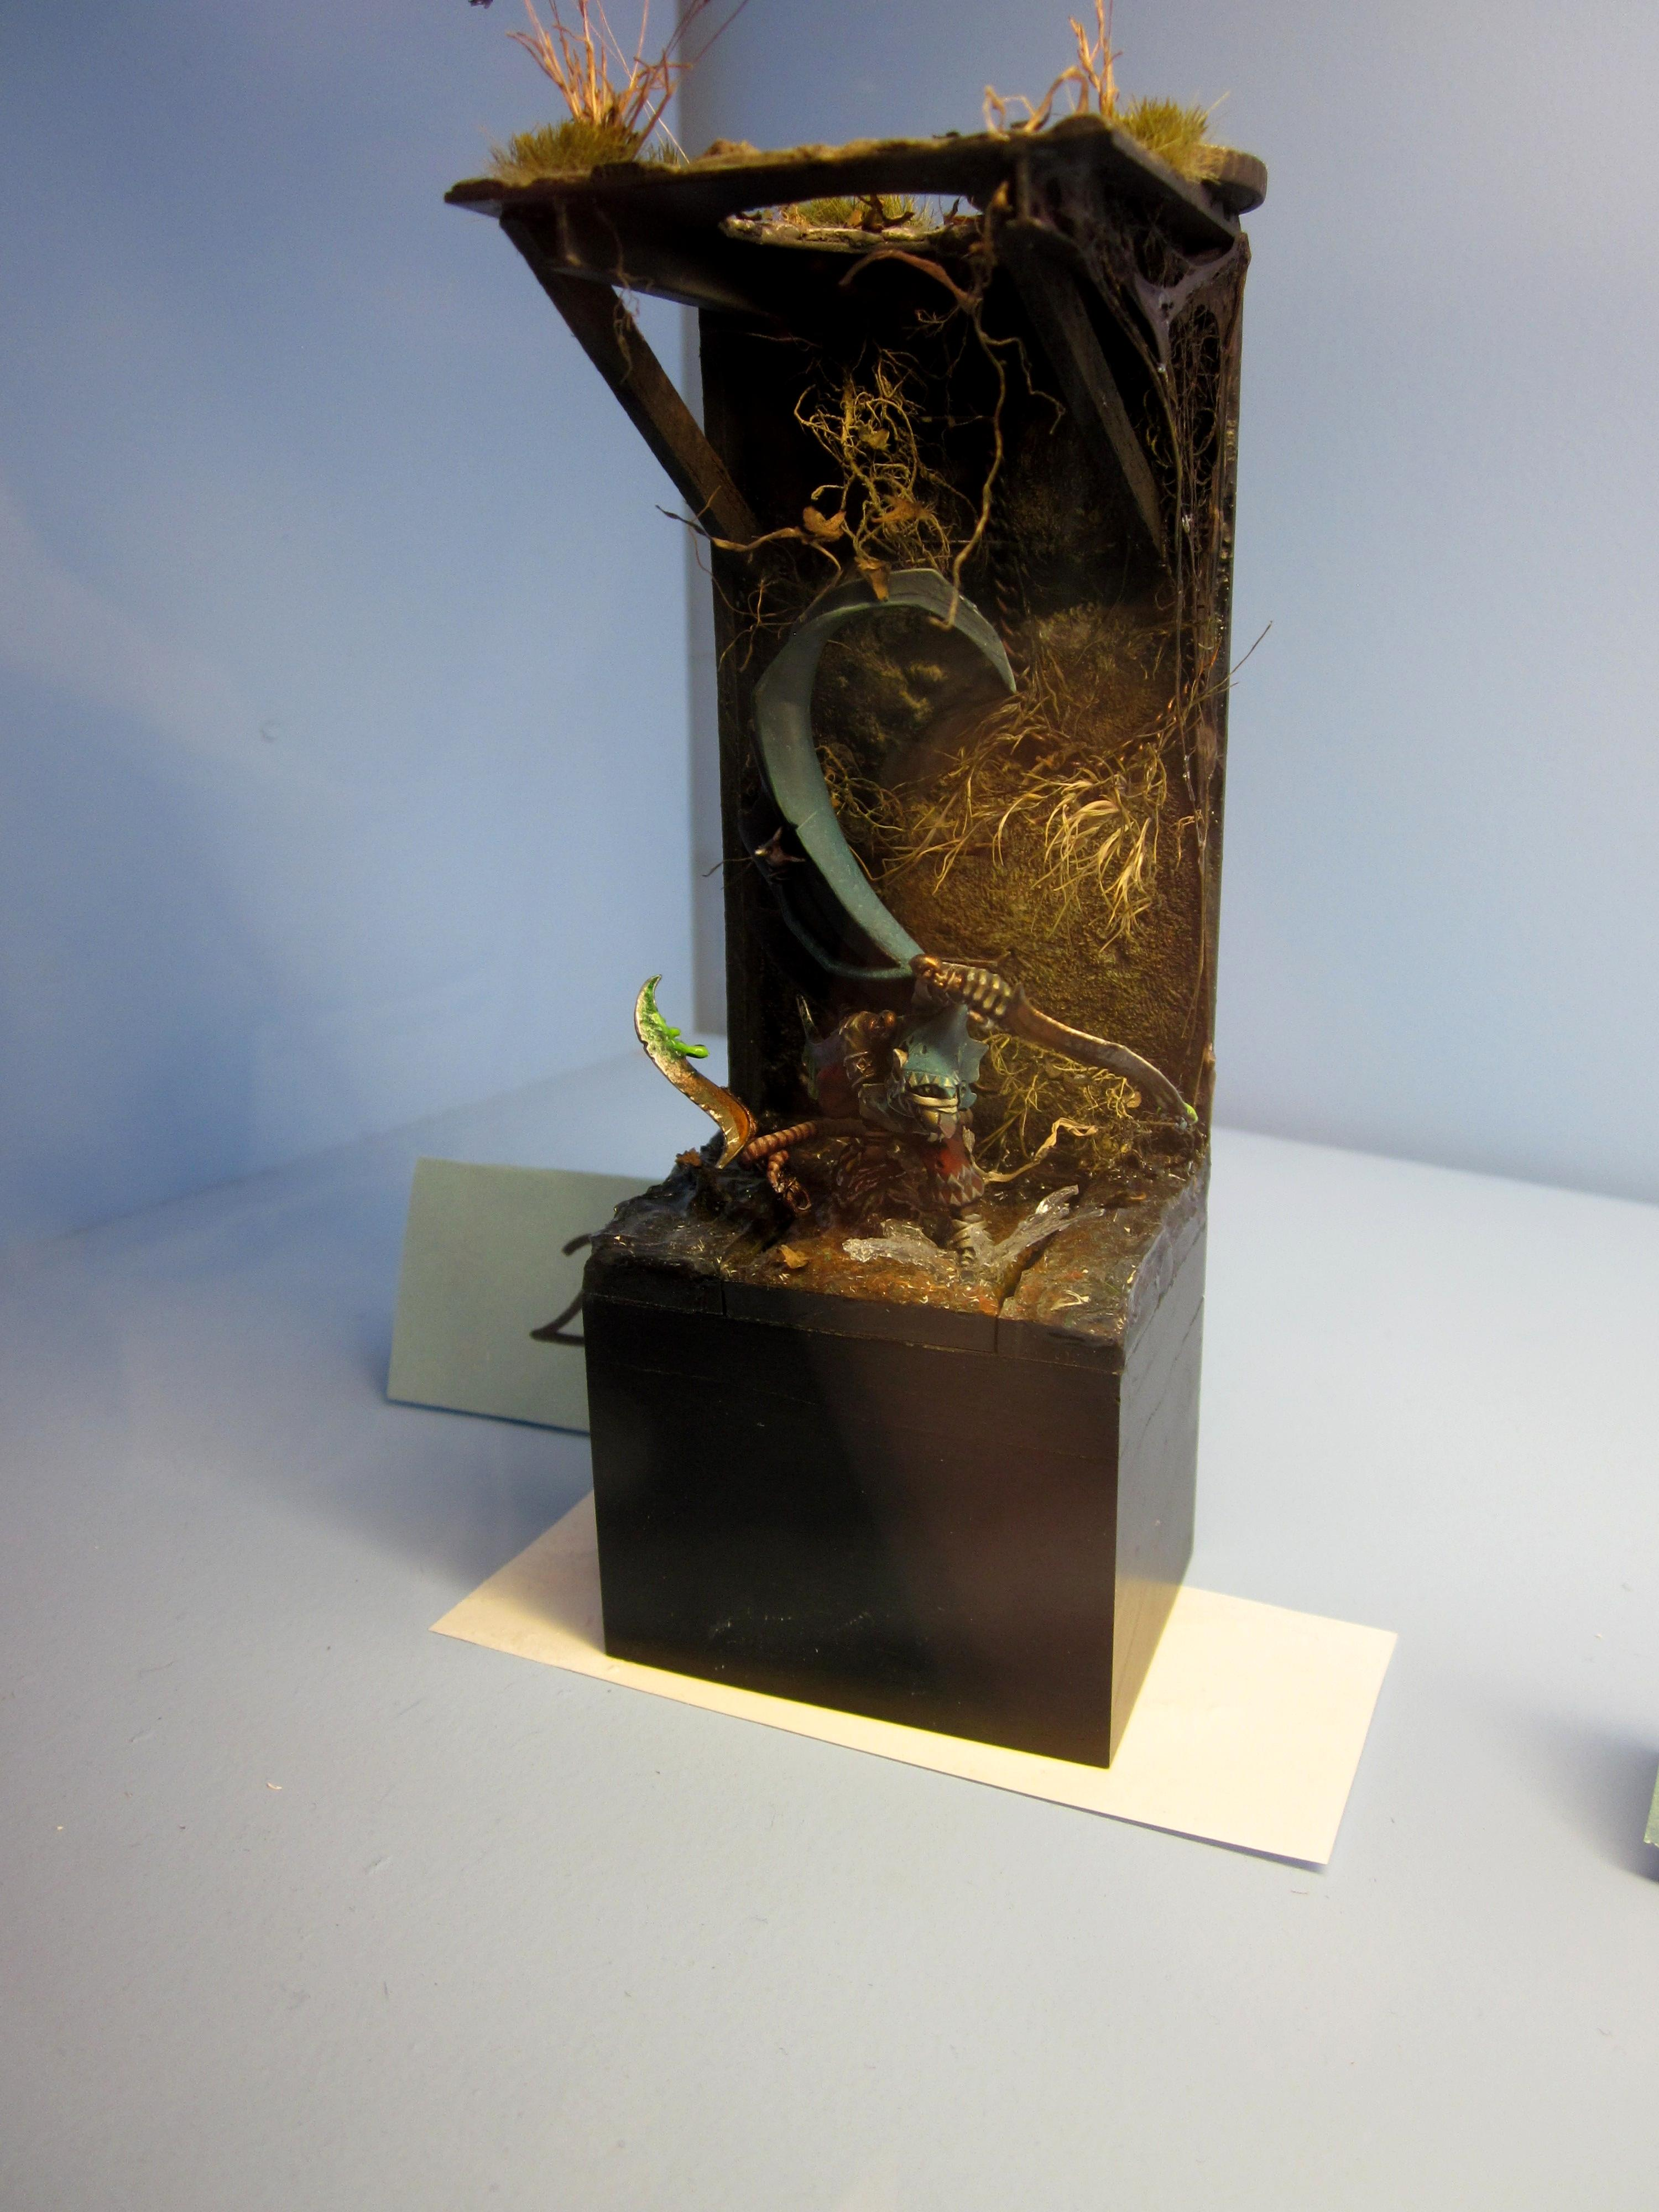 Adepticon 2011, Crystal Brush Entry, Sewer, Skaven, Water Effect